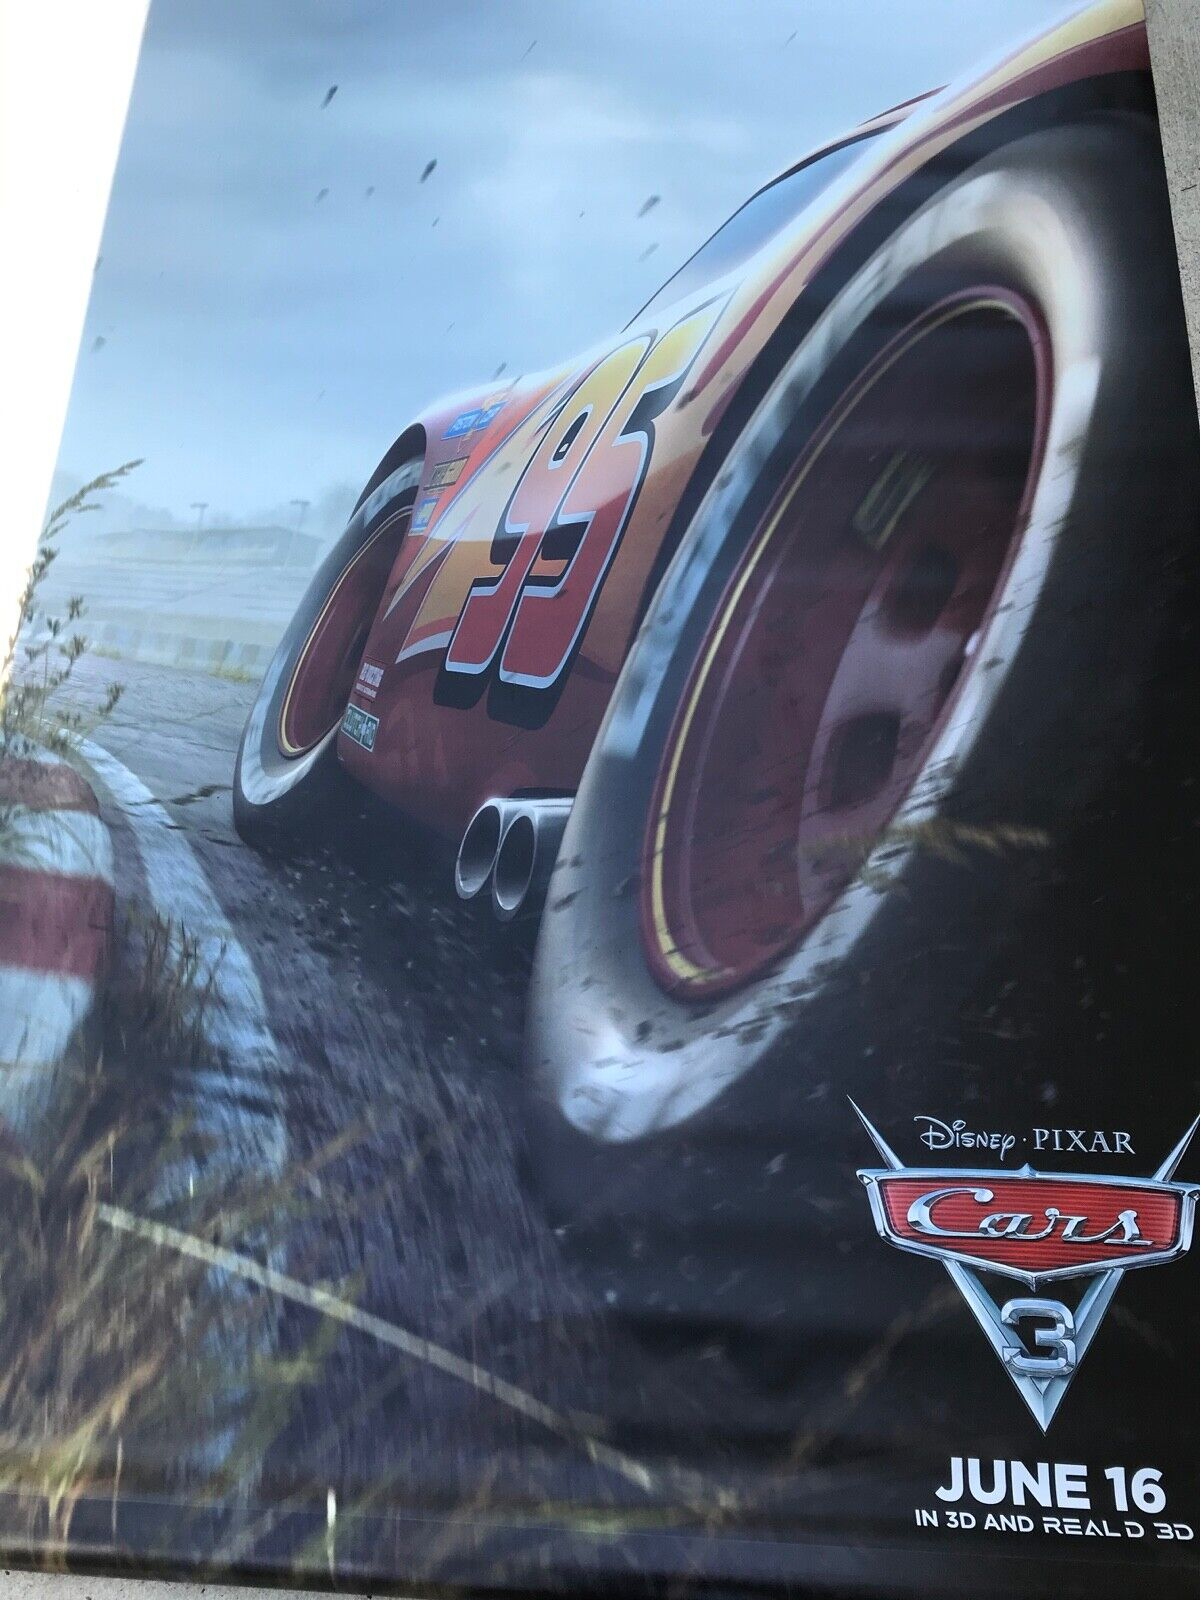 PIRATES OF THE CARIBBEAN CARS 8' x 5' VINYL MOVIE POSTER THE